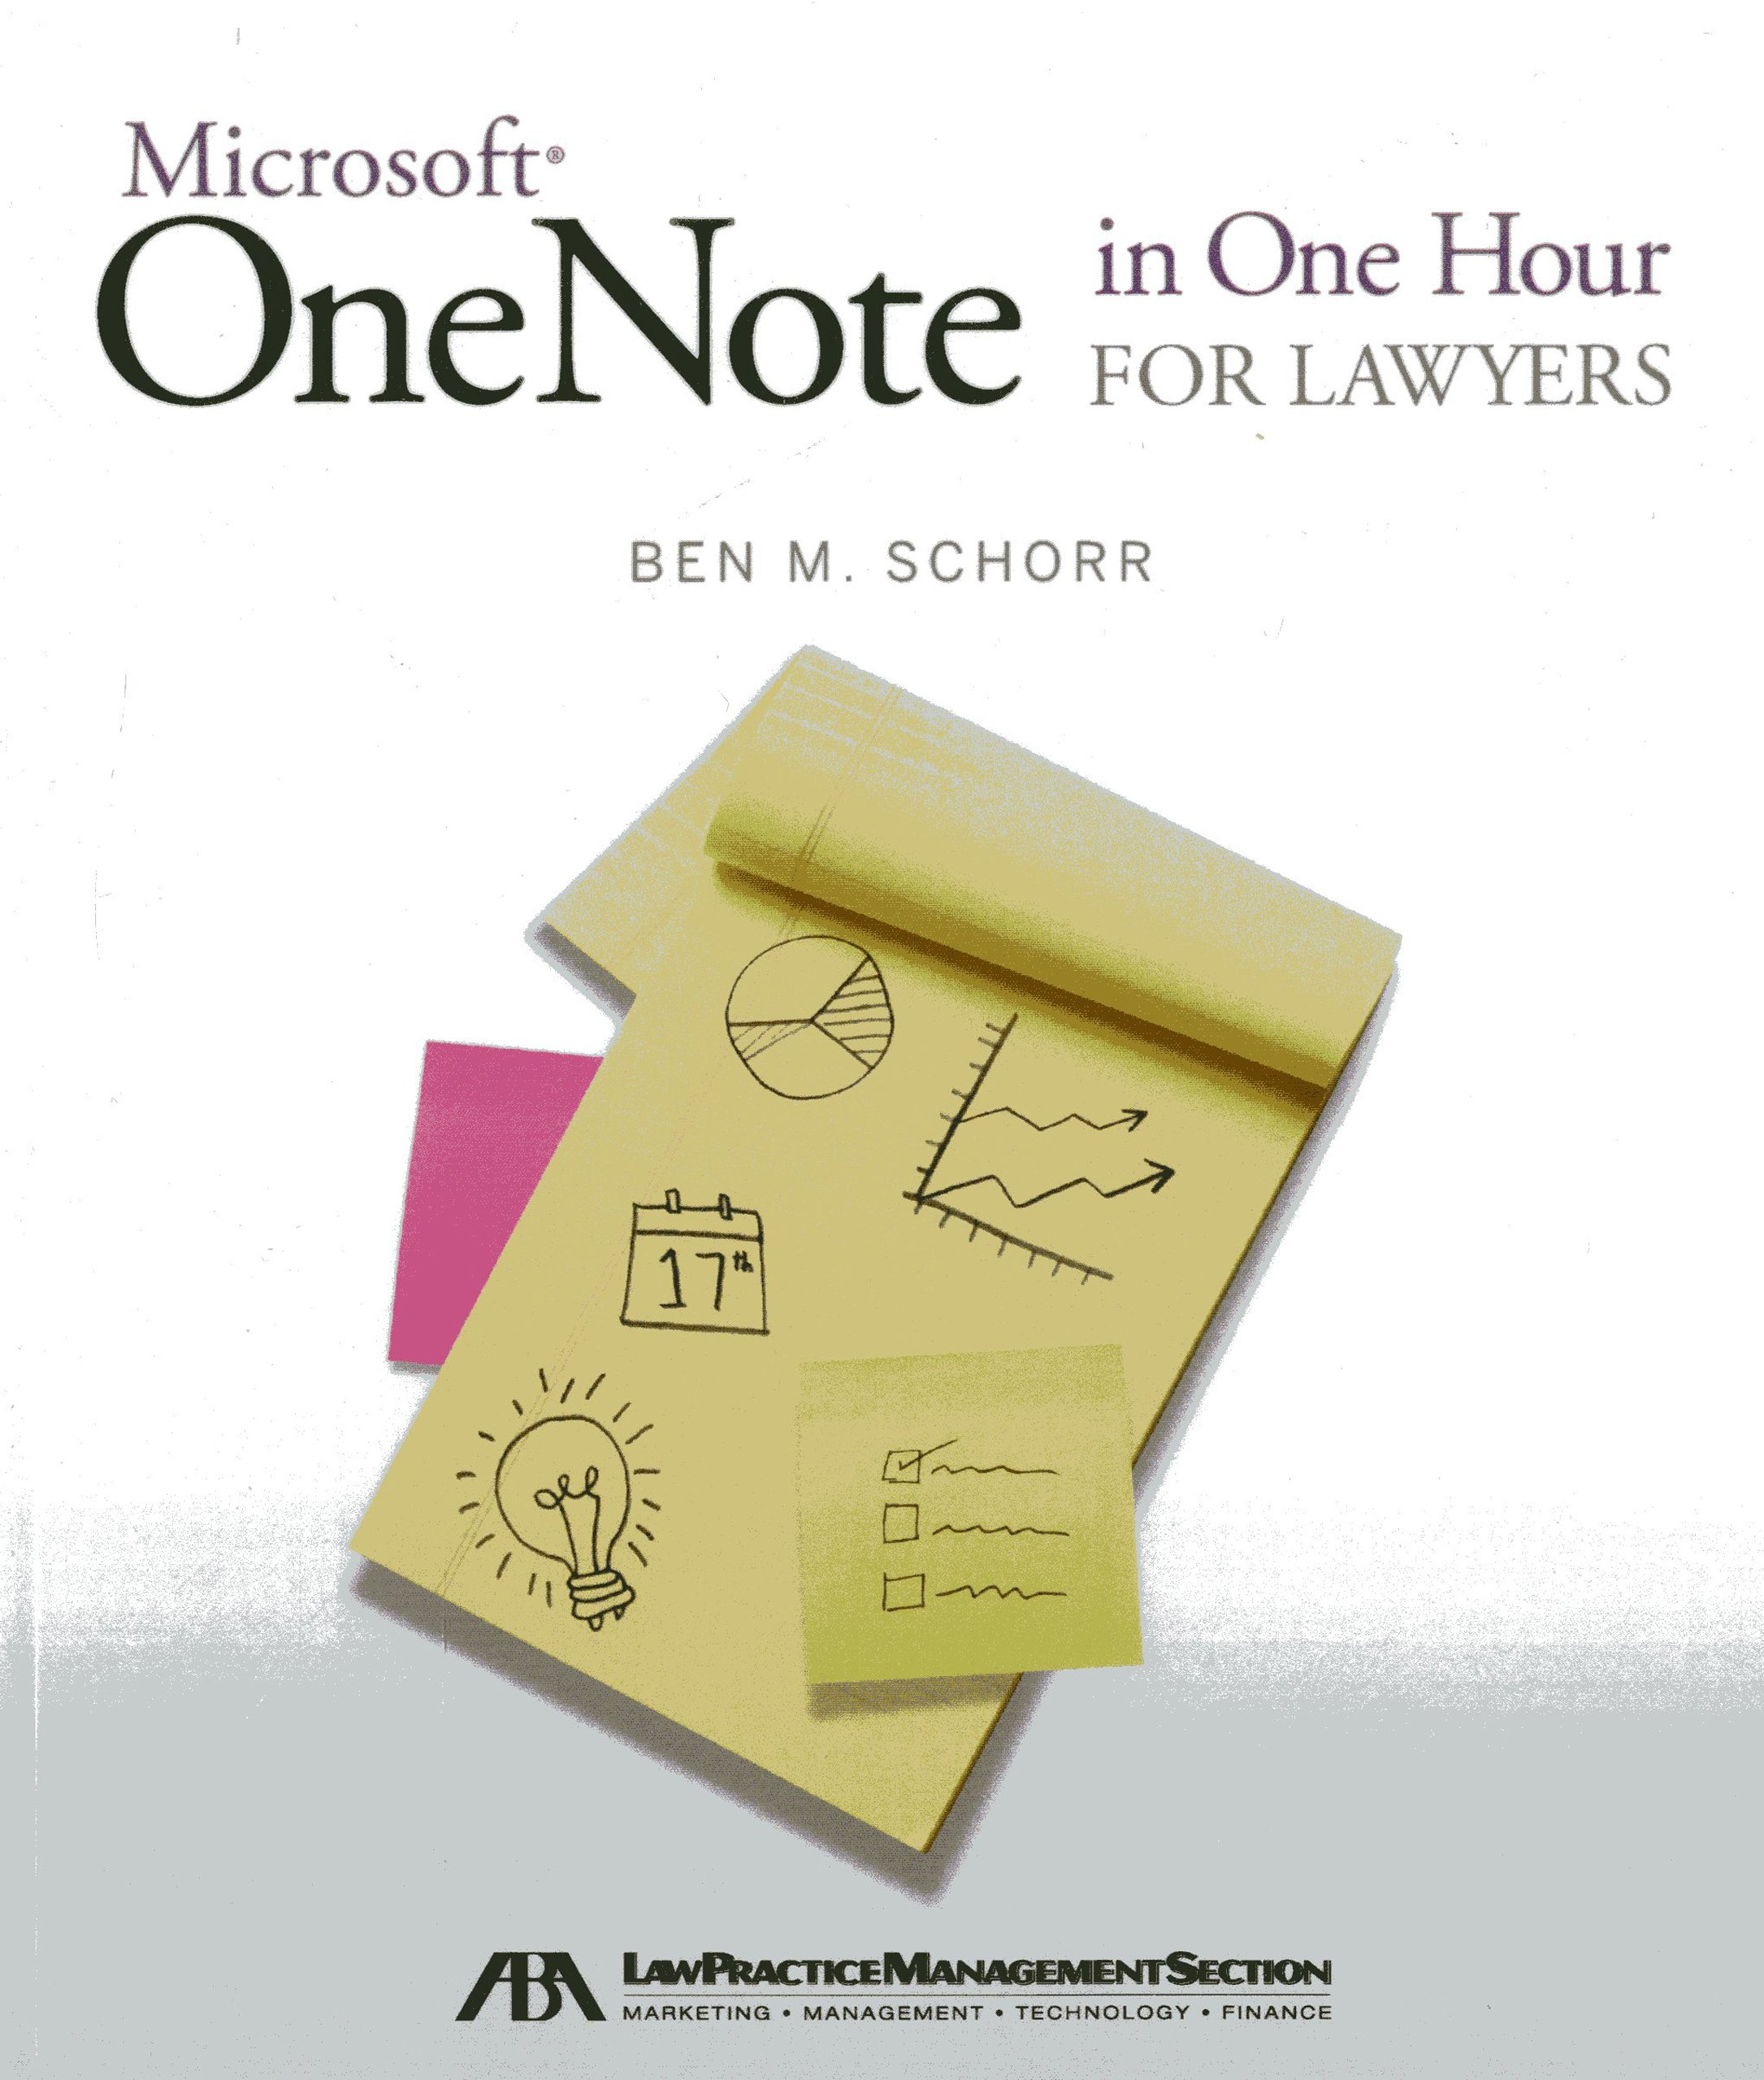 microsoft onenote in one hour for lawyers ben m schorr